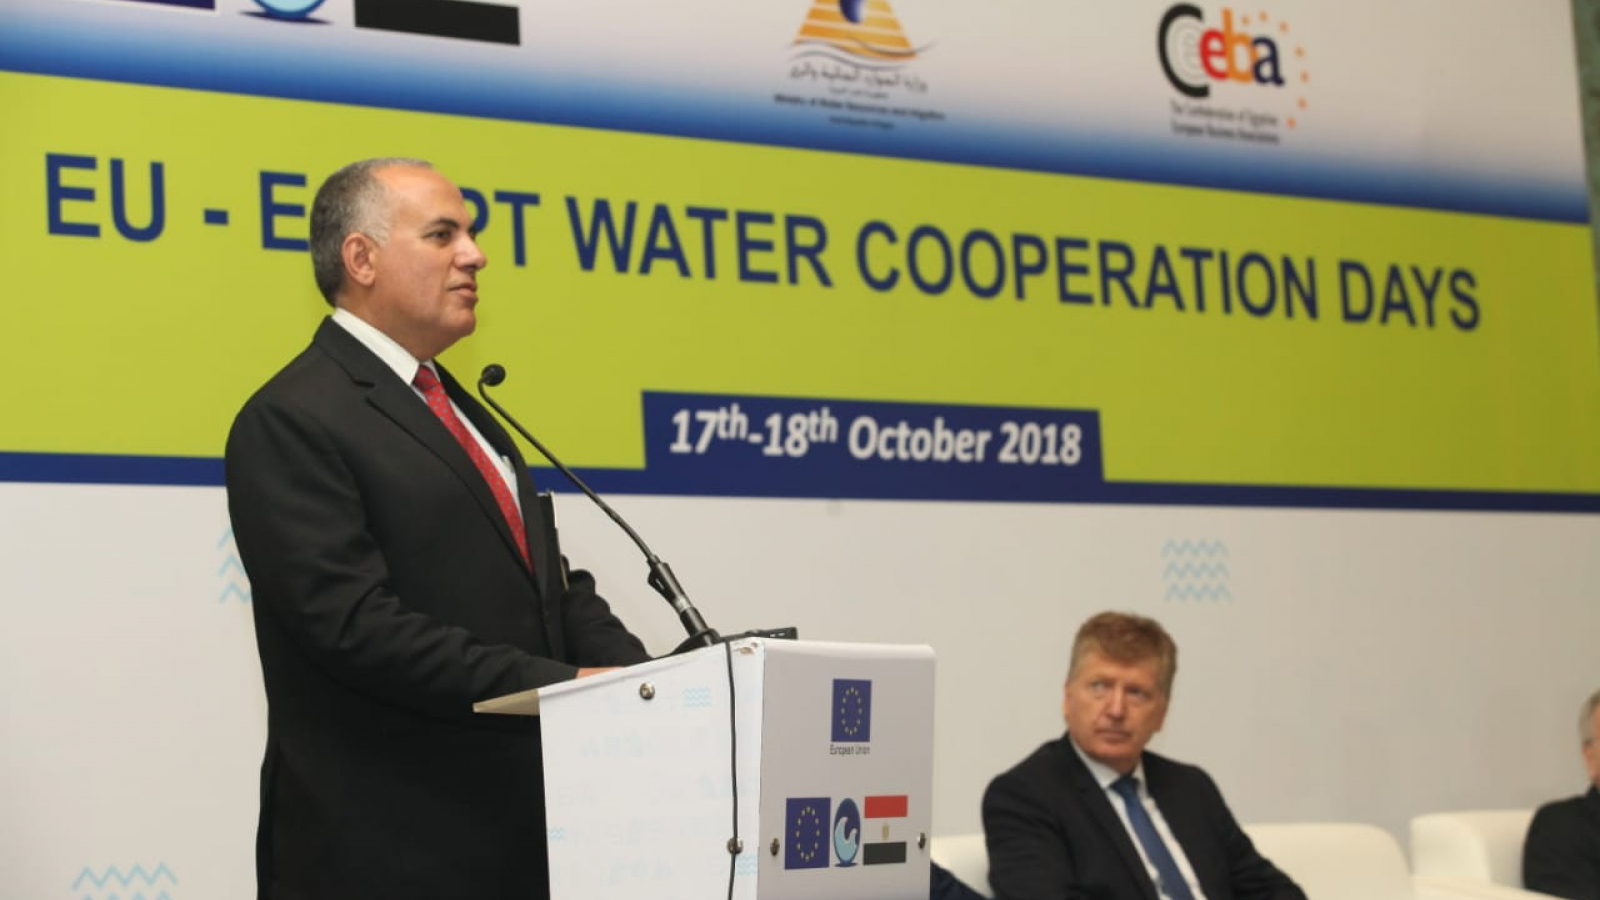 The EU-Egypt Water Cooperation Days